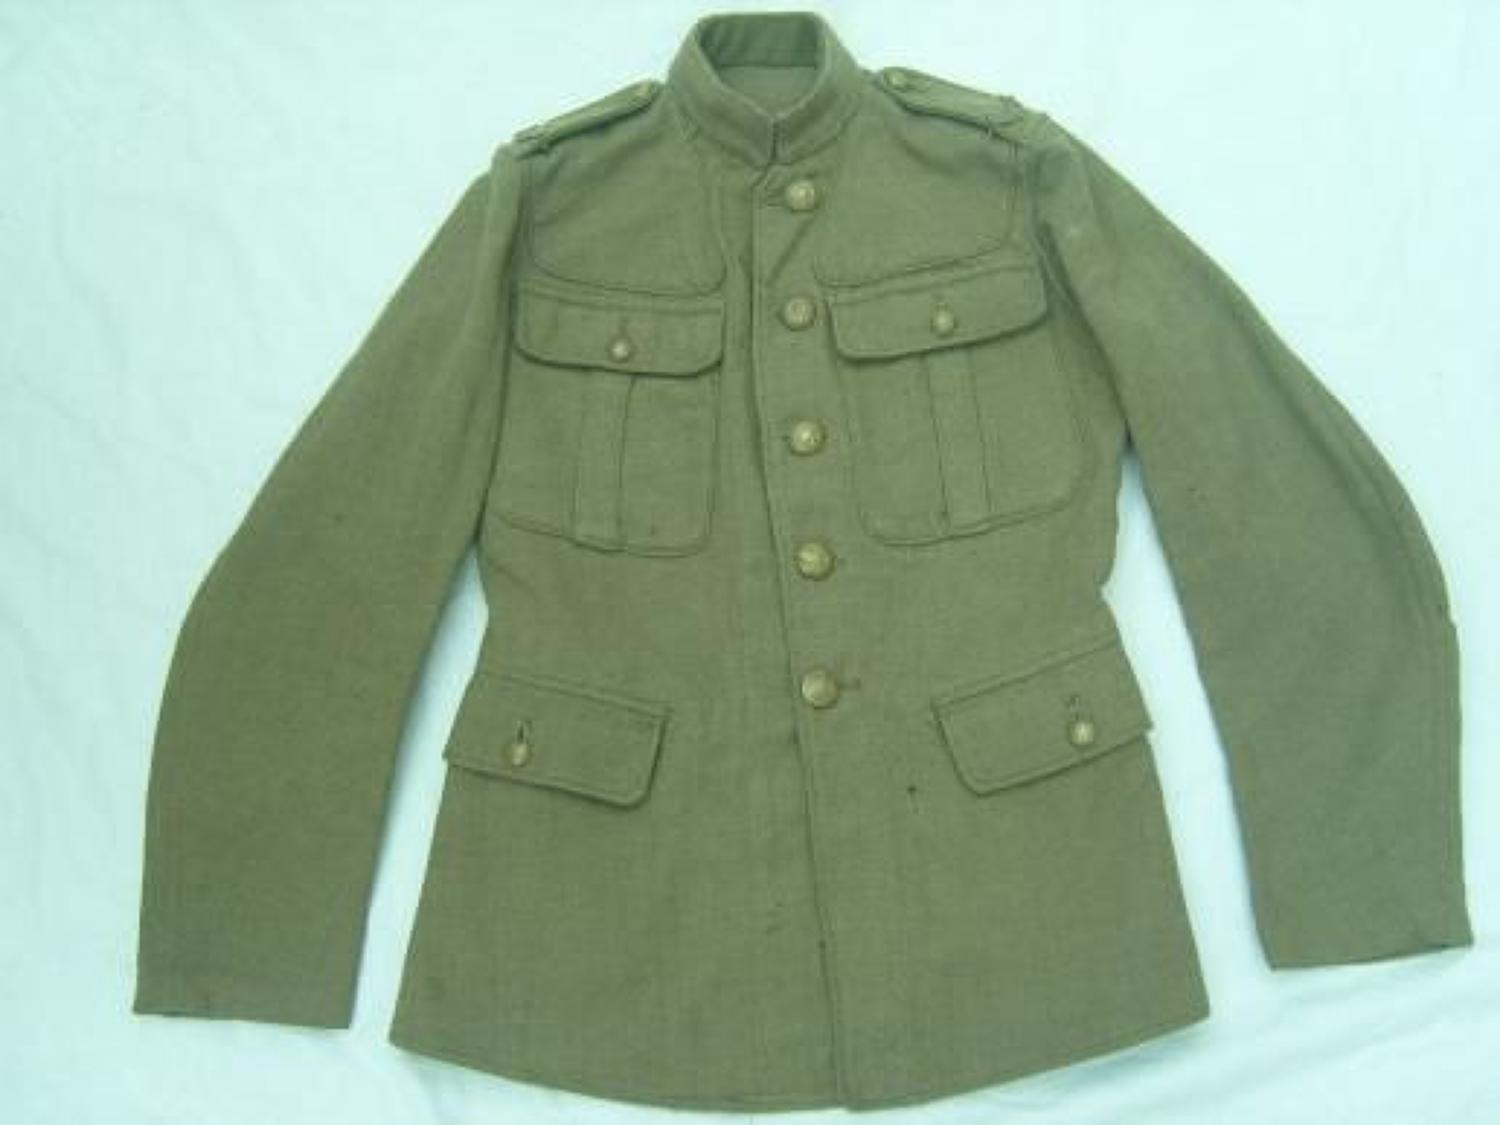 1902 PATTERN OTHER RANKS BRITISH SERVICE DRESS TUNIC: MIDDLESEX REGIMENT